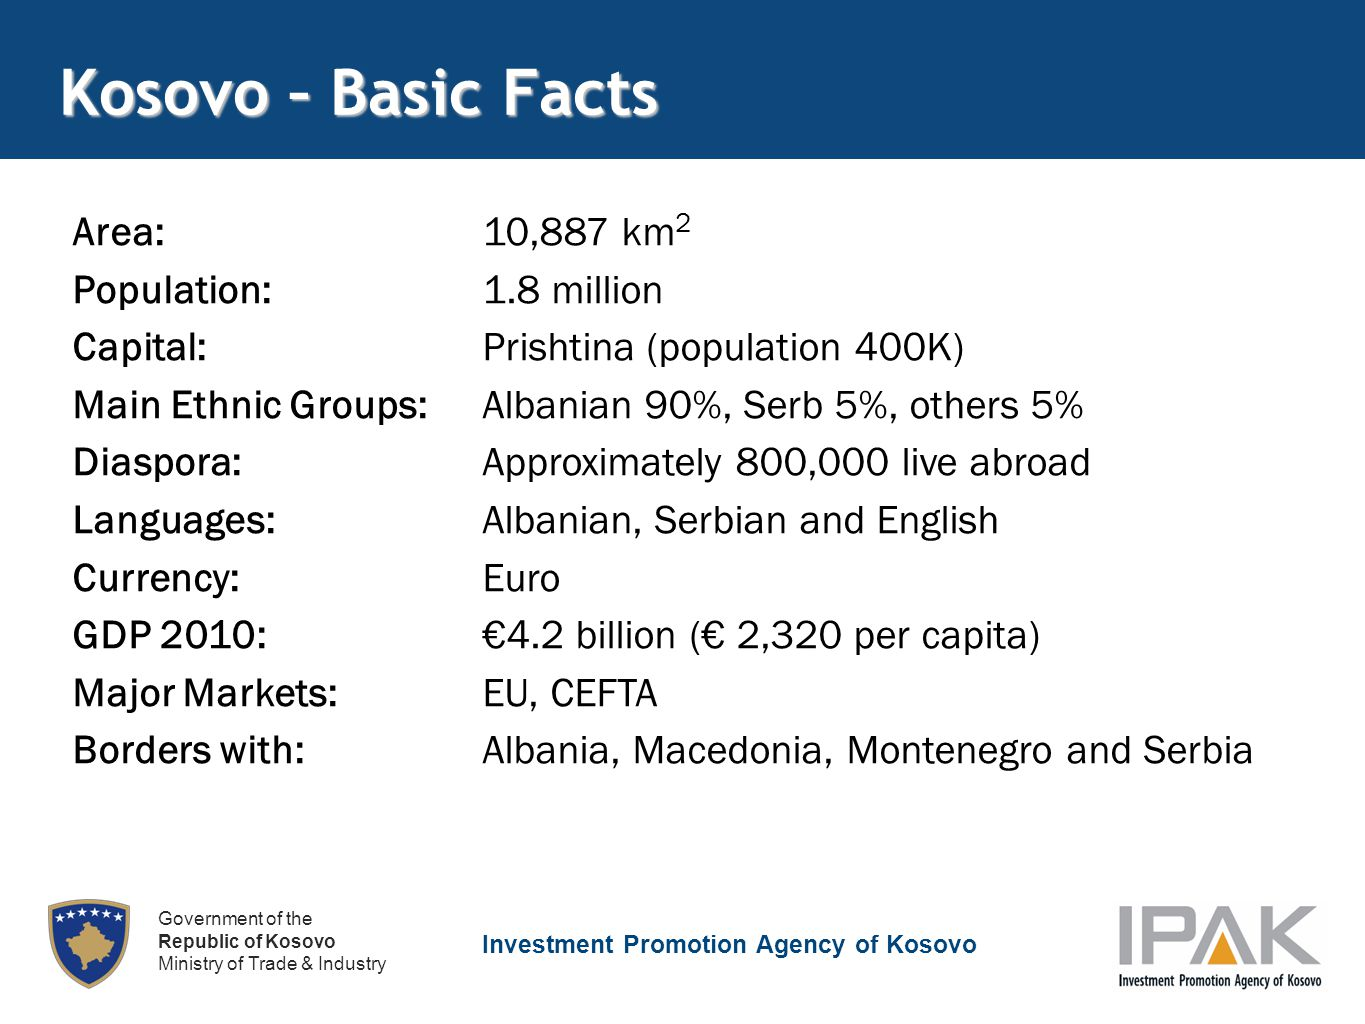 Investment Promotion Agency of Kosovo Government of the Republic of Kosovo Ministry of Trade & Industry Kosovo – Basic Facts Area:10,887 km 2 Population:1.8 million Capital:Prishtina (population 400K) Main Ethnic Groups:Albanian 90%, Serb 5%, others 5% Diaspora:Approximately 800,000 live abroad Languages:Albanian, Serbian and English Currency:Euro GDP 2010: €4.2 billion (€ 2,320 per capita) Major Markets:EU, CEFTA Borders with:Albania, Macedonia, Montenegro and Serbia